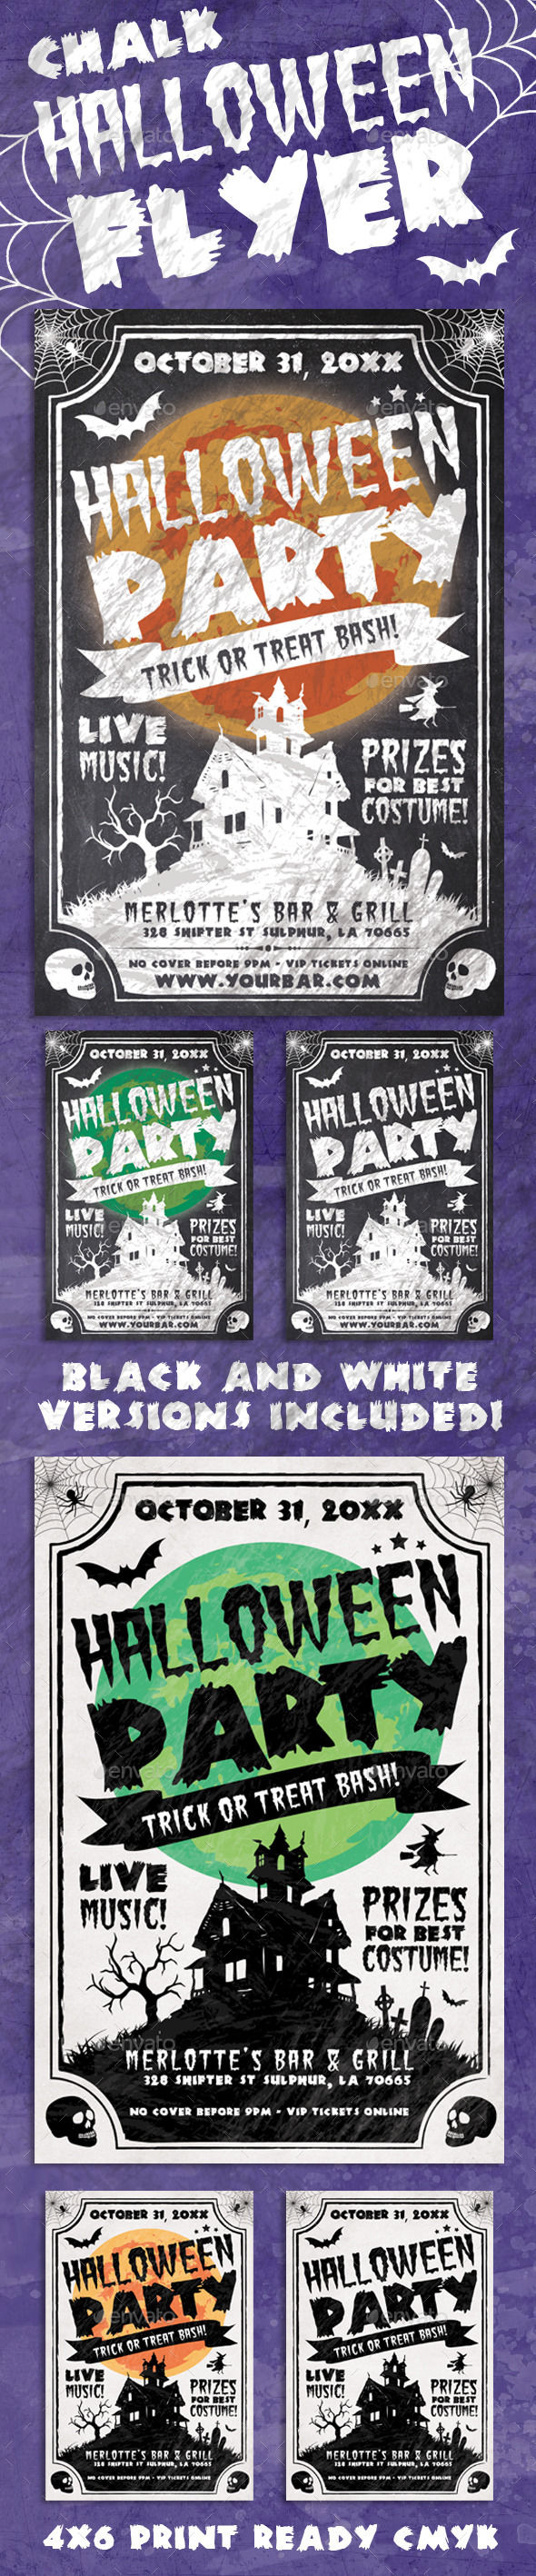 Chalk Halloween Flyer by Ronin54 (Halloween party flyer)